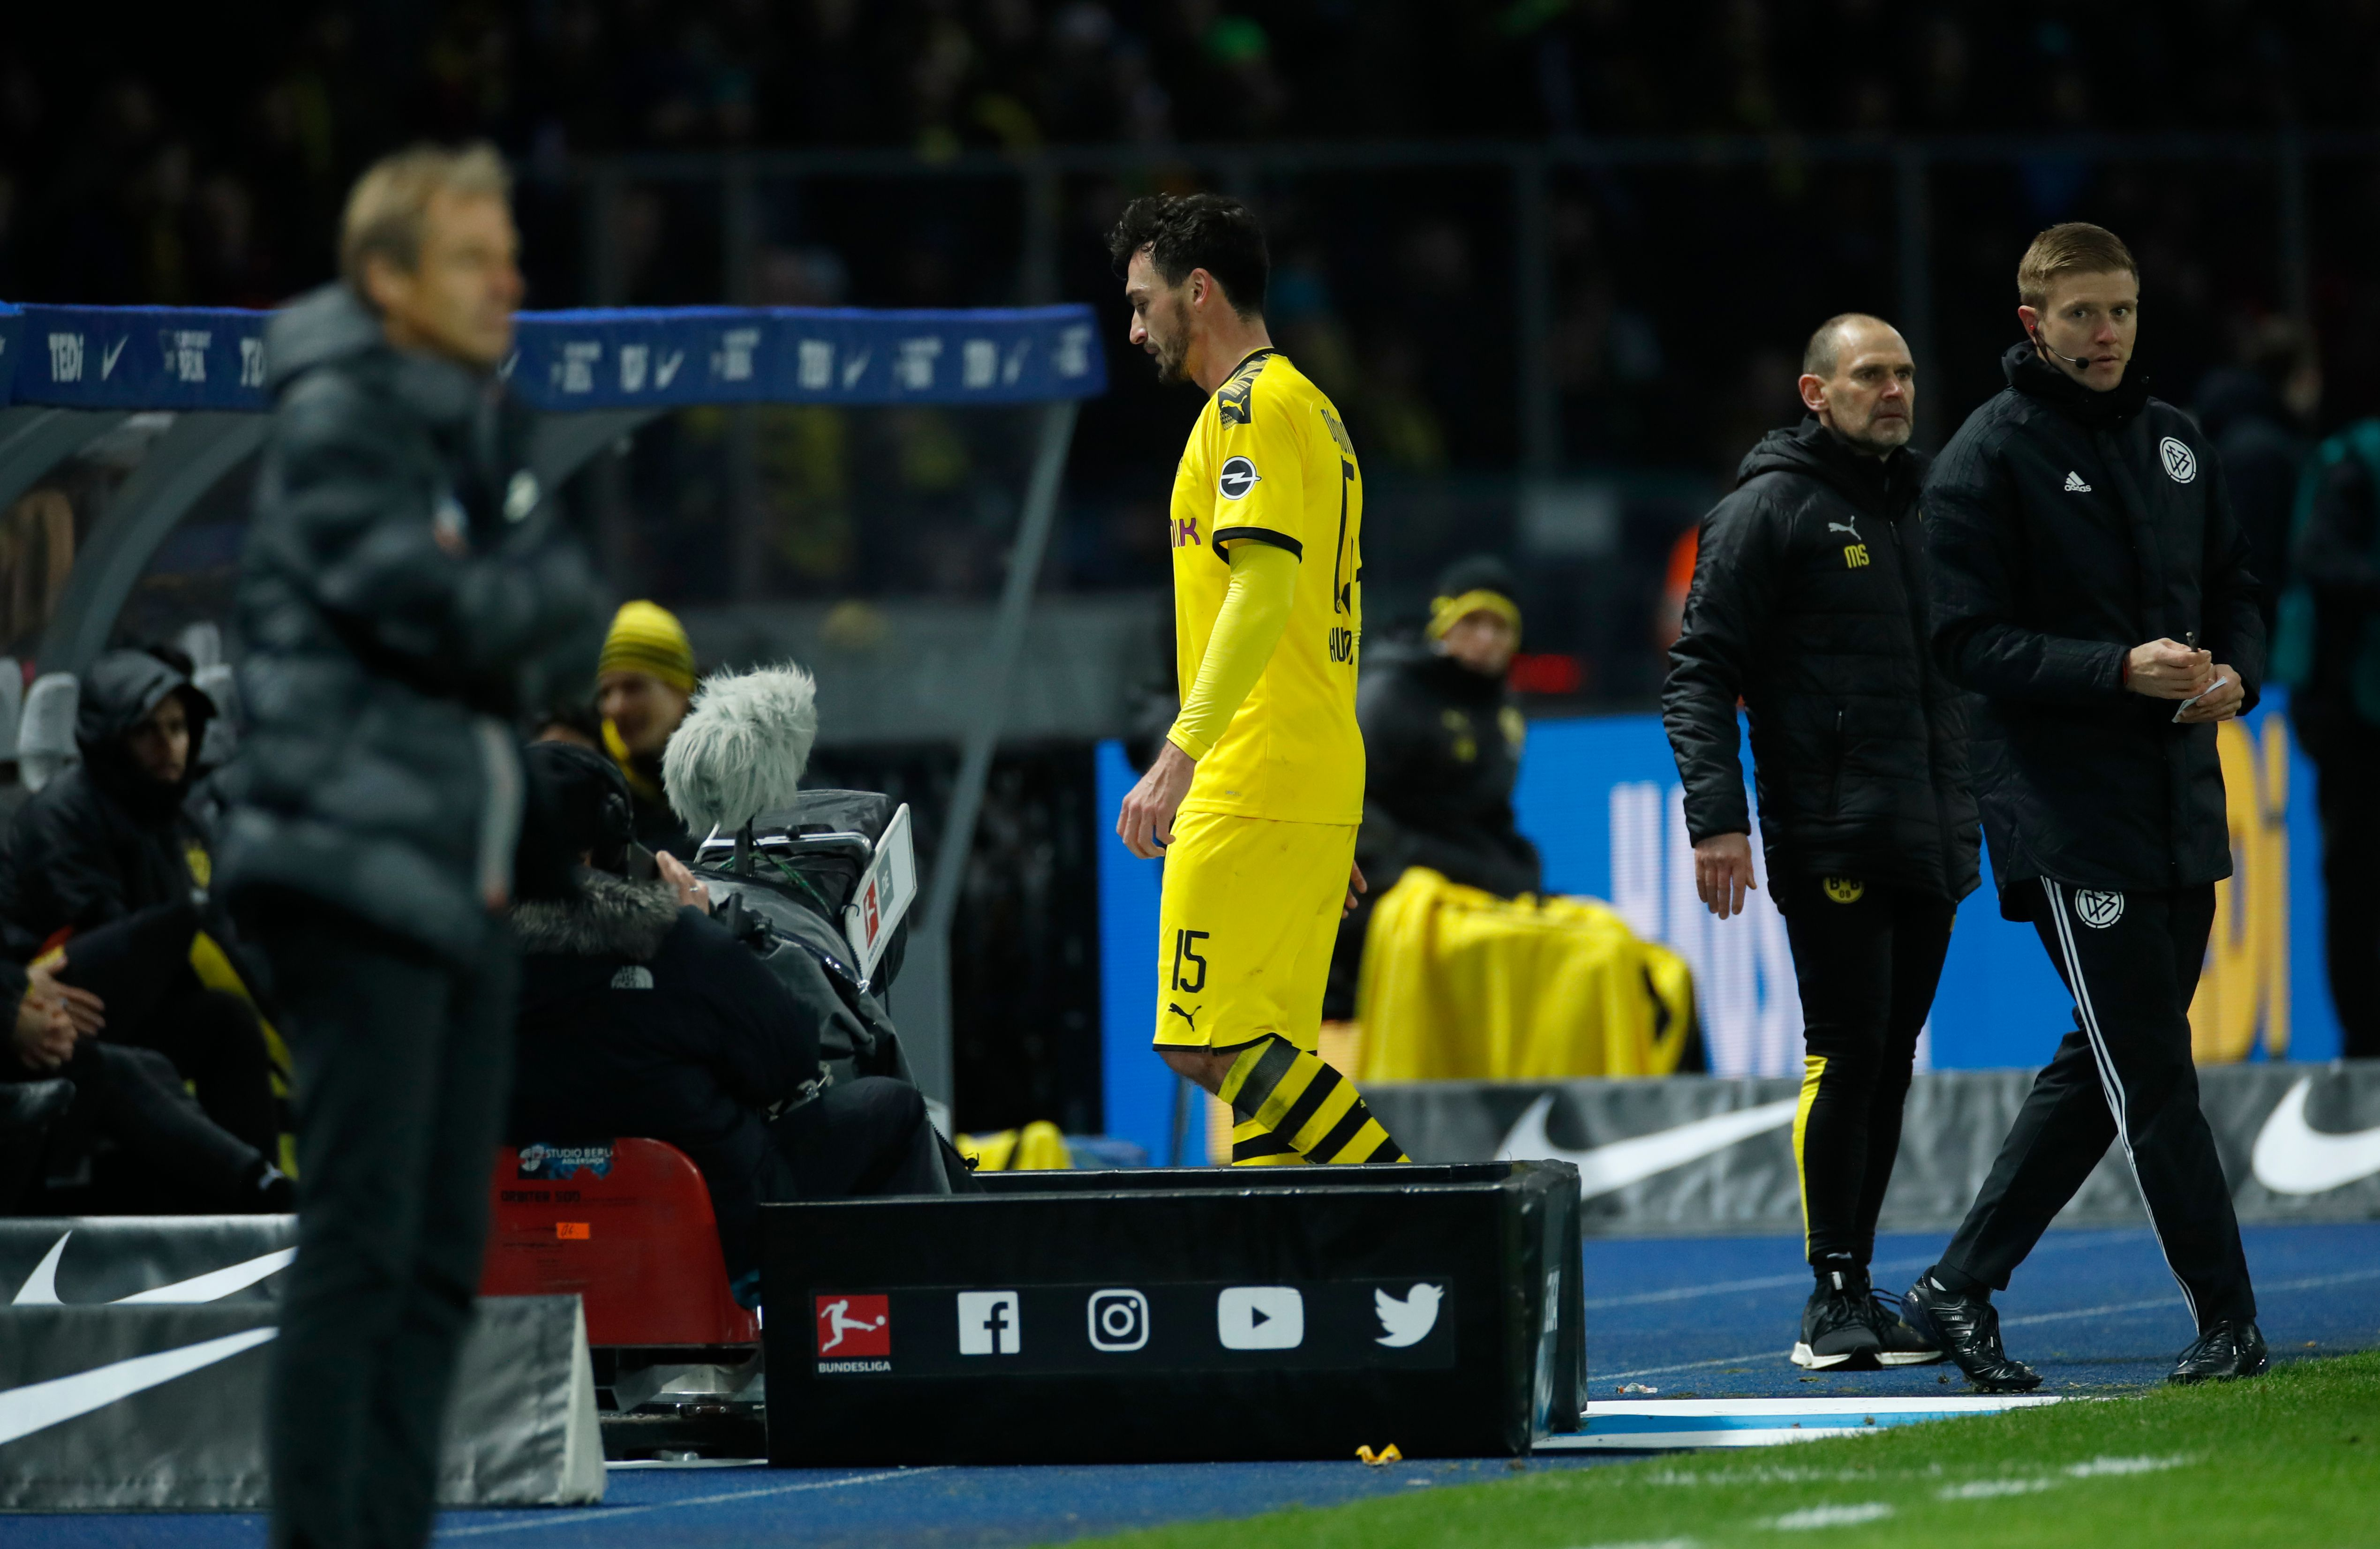 Mats Hummels is suspended for the weekend clash (Photo by ODD ANDERSEN/AFP via Getty Images)